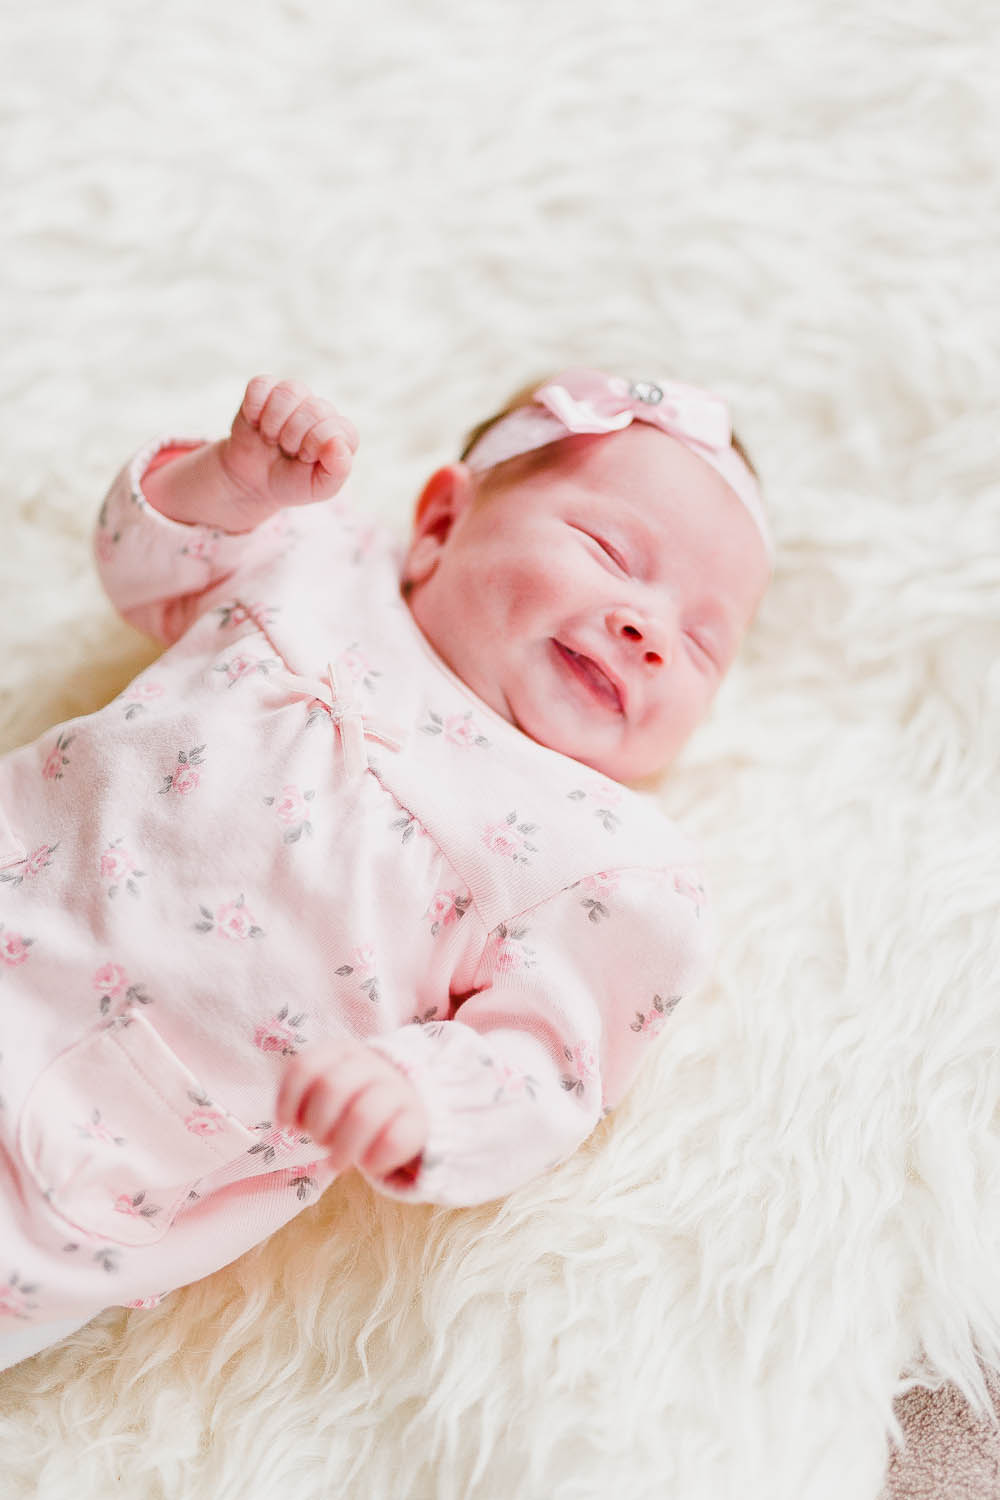 newborn-photography-ashford-1.jpg